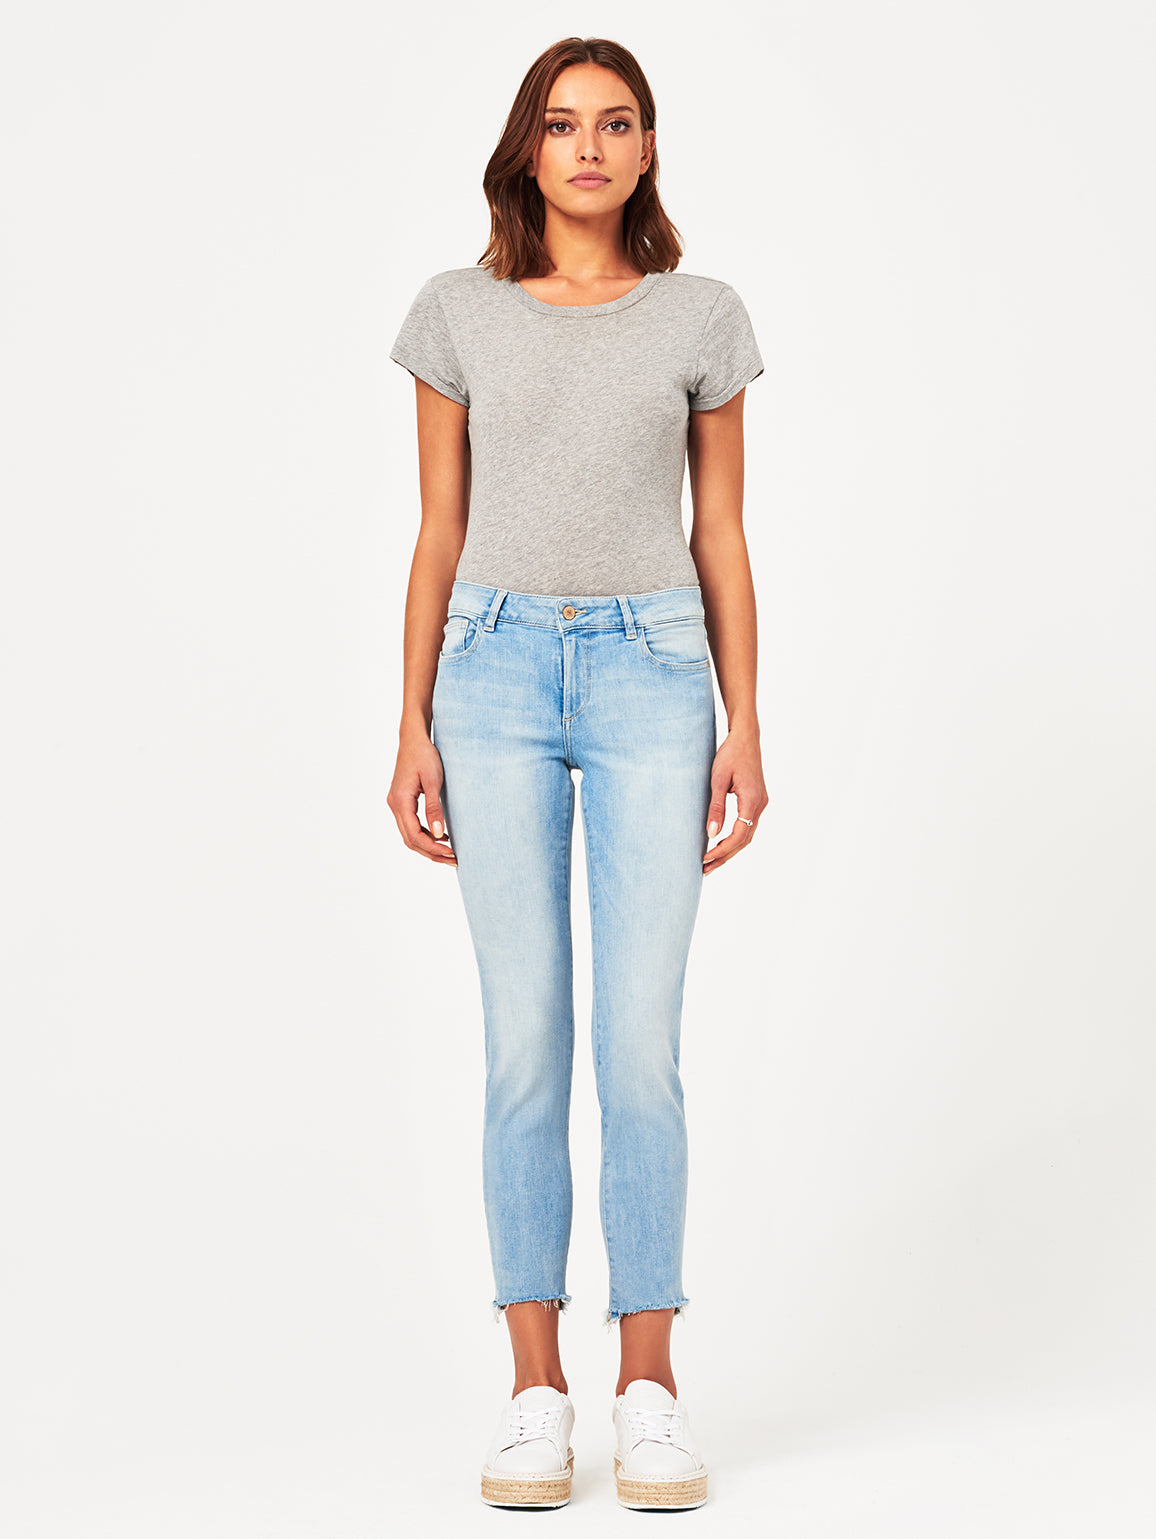 Coco Mid Rise Curvy Ankle Skinny | Kelso DL 1961 Denim